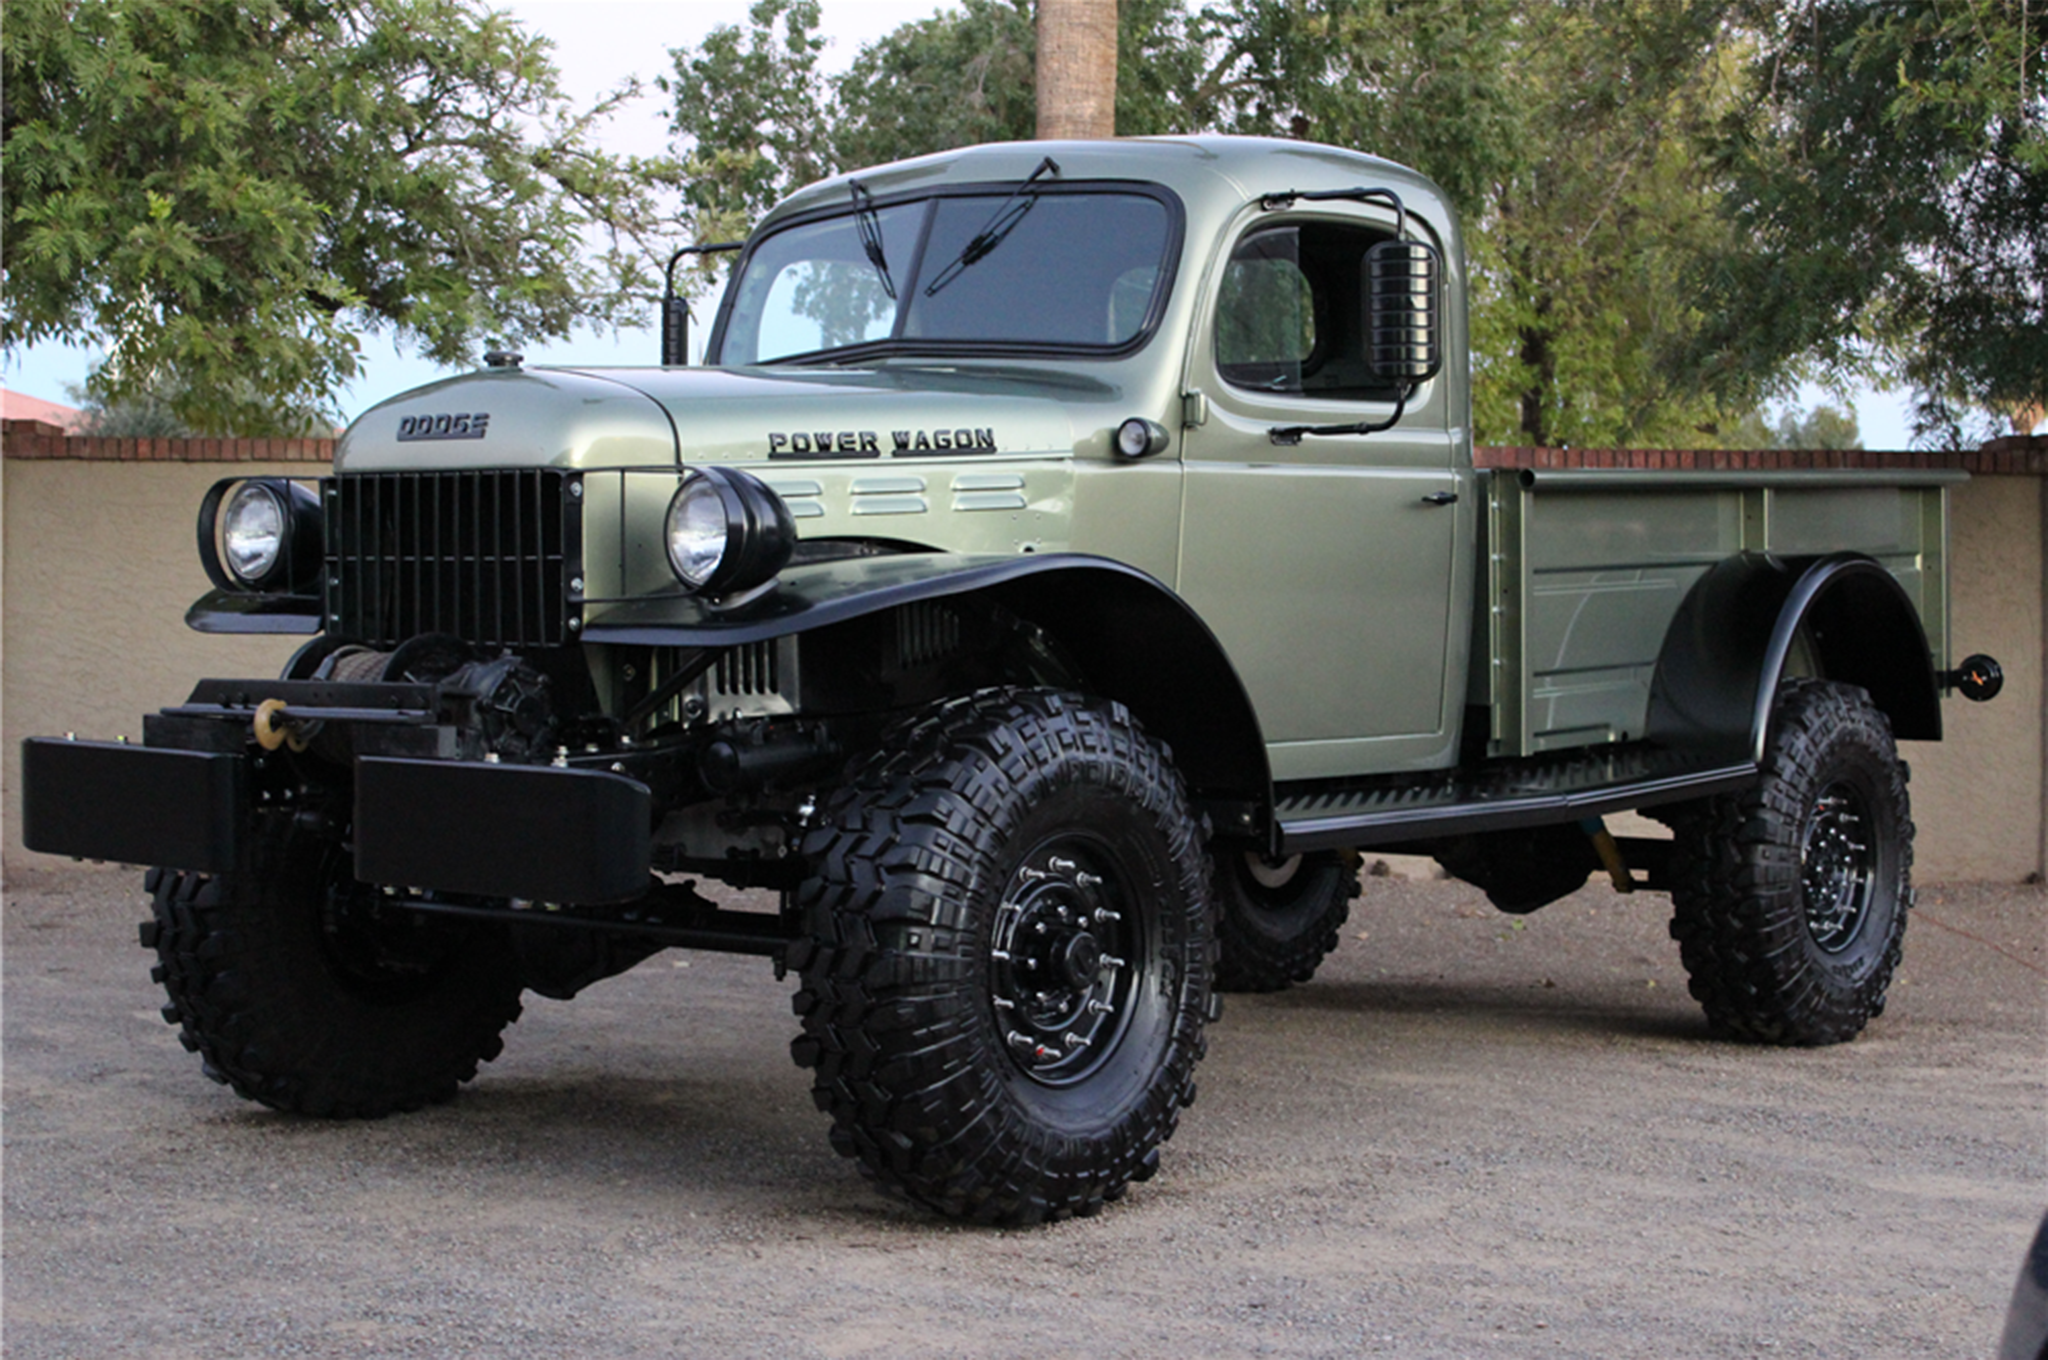 Dodge Power Wagon For Sale >> Just Listed Two Very Different Flavors Of Vintage Dodge Power Wagon